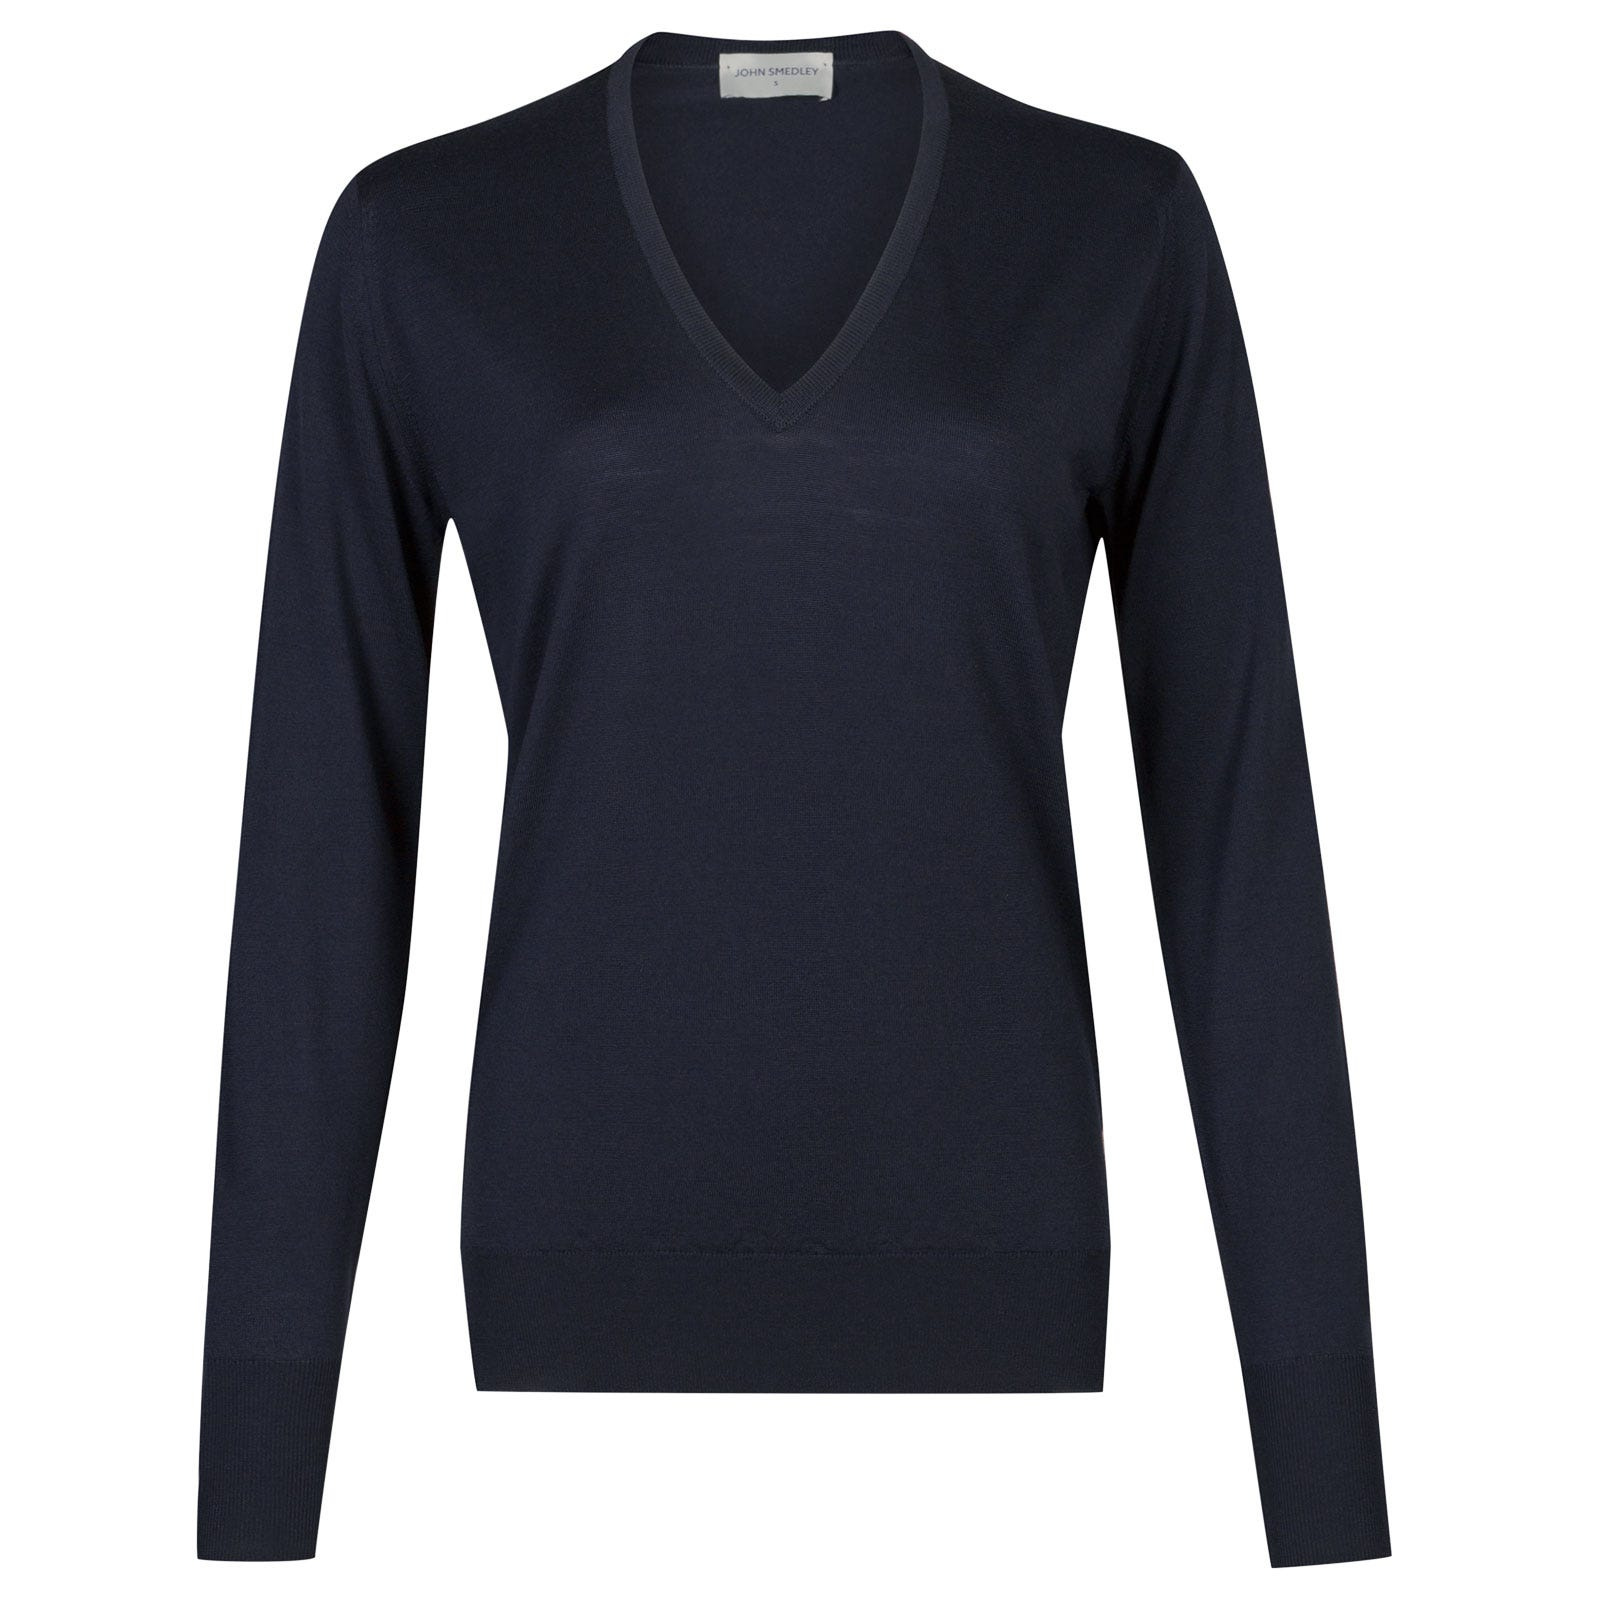 John Smedley Pepin Merino Wool Sweater in Midnight-S